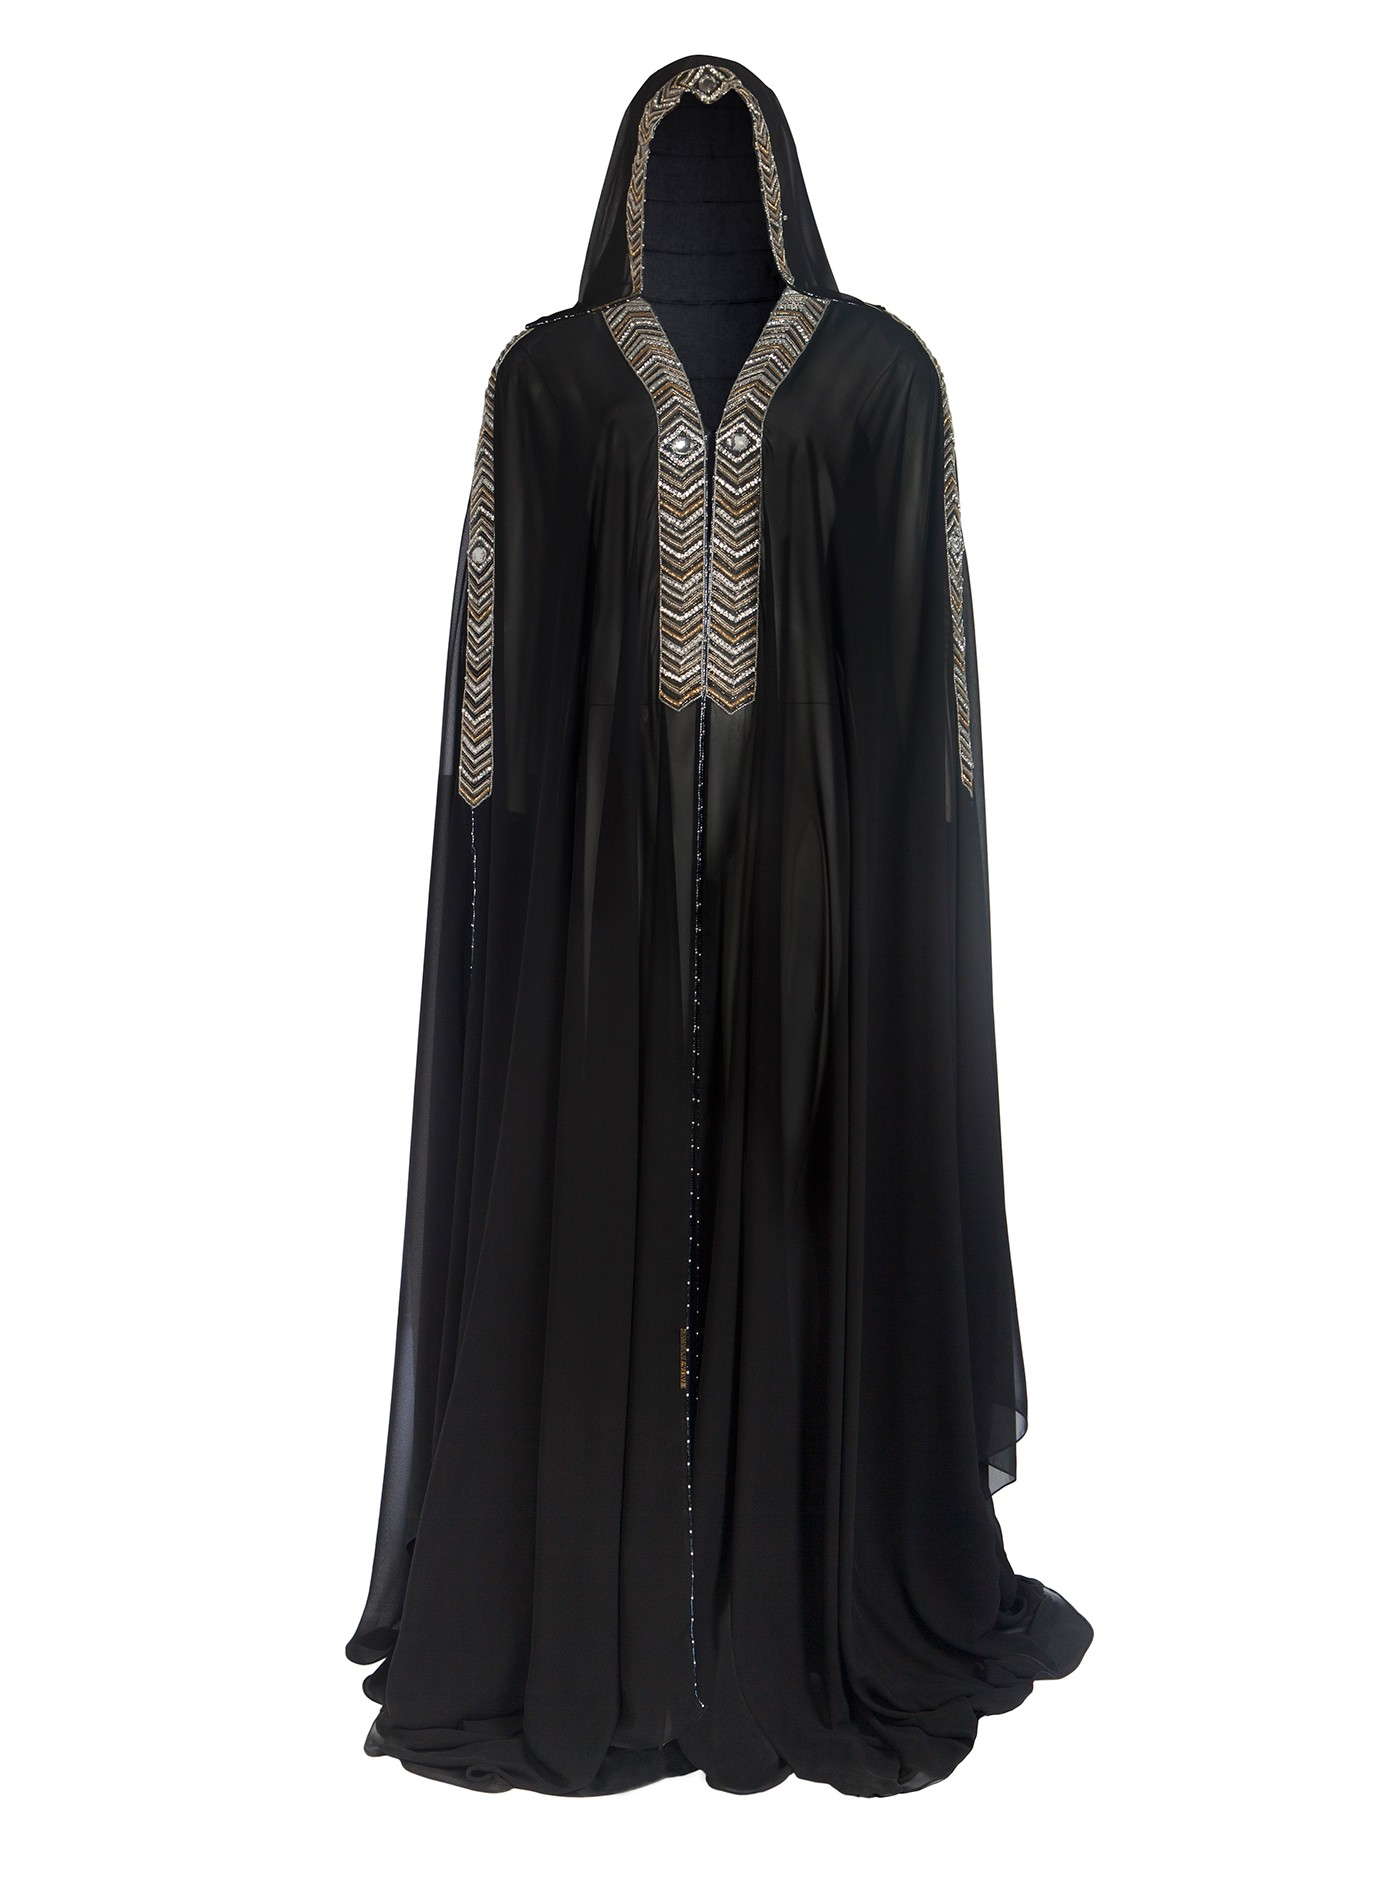 Abaya Collection - Tips - Styles-assiyah-abaya_2-jpg